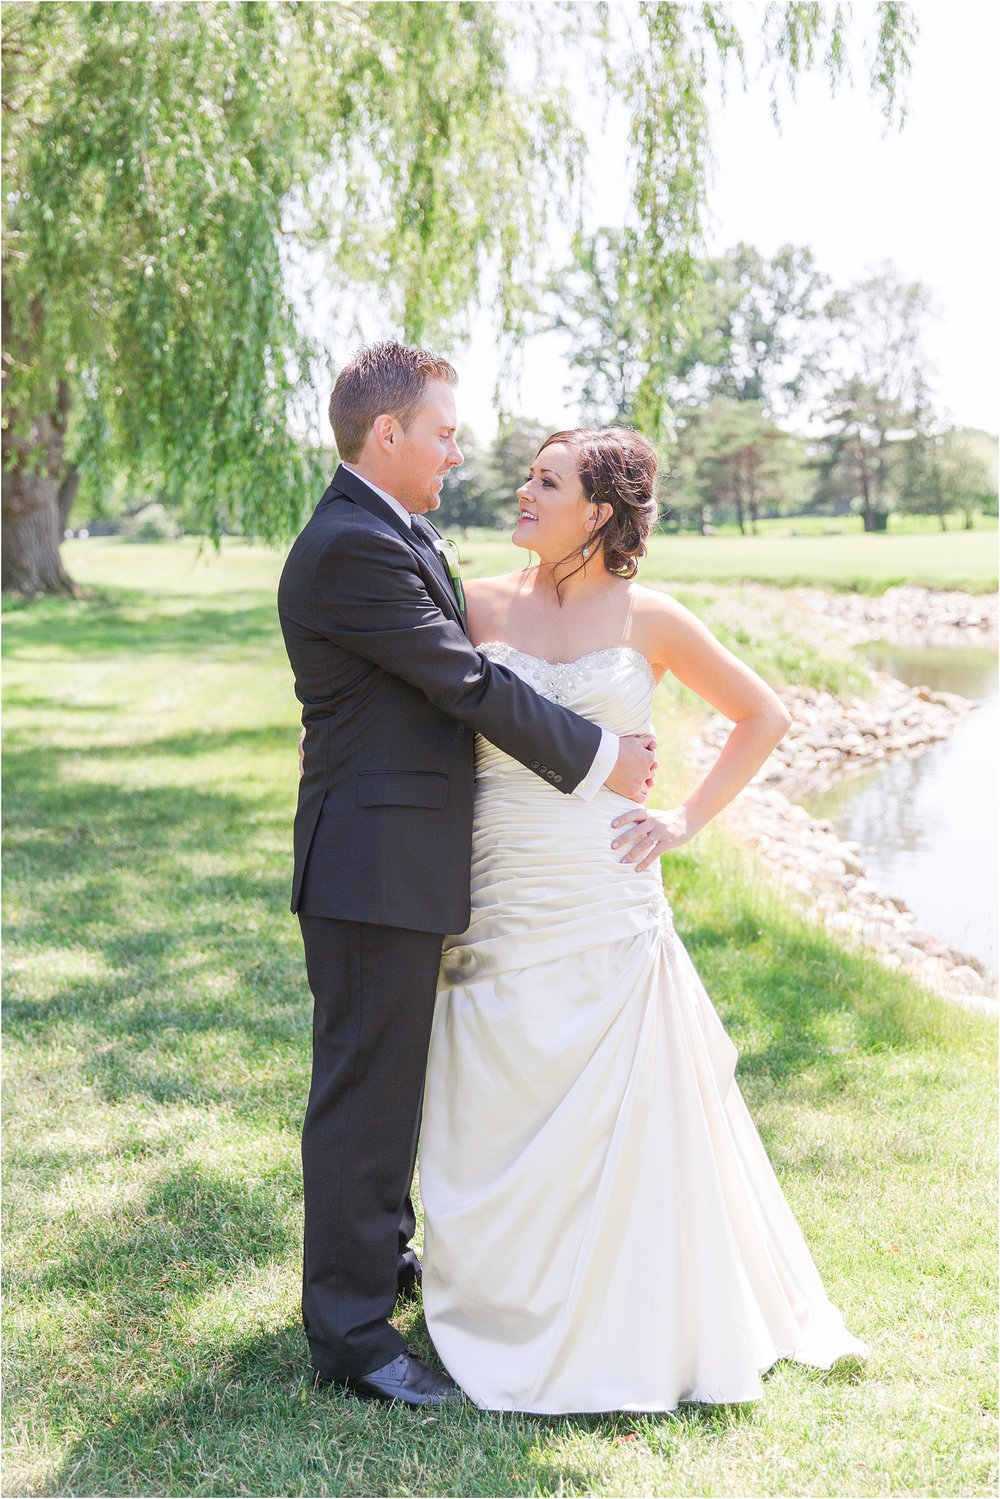 classic-wedding-photos-at-great-oaks-country-club-in-rochester-hills-mi-by-courtney-carolyn-photography_0034.jpg